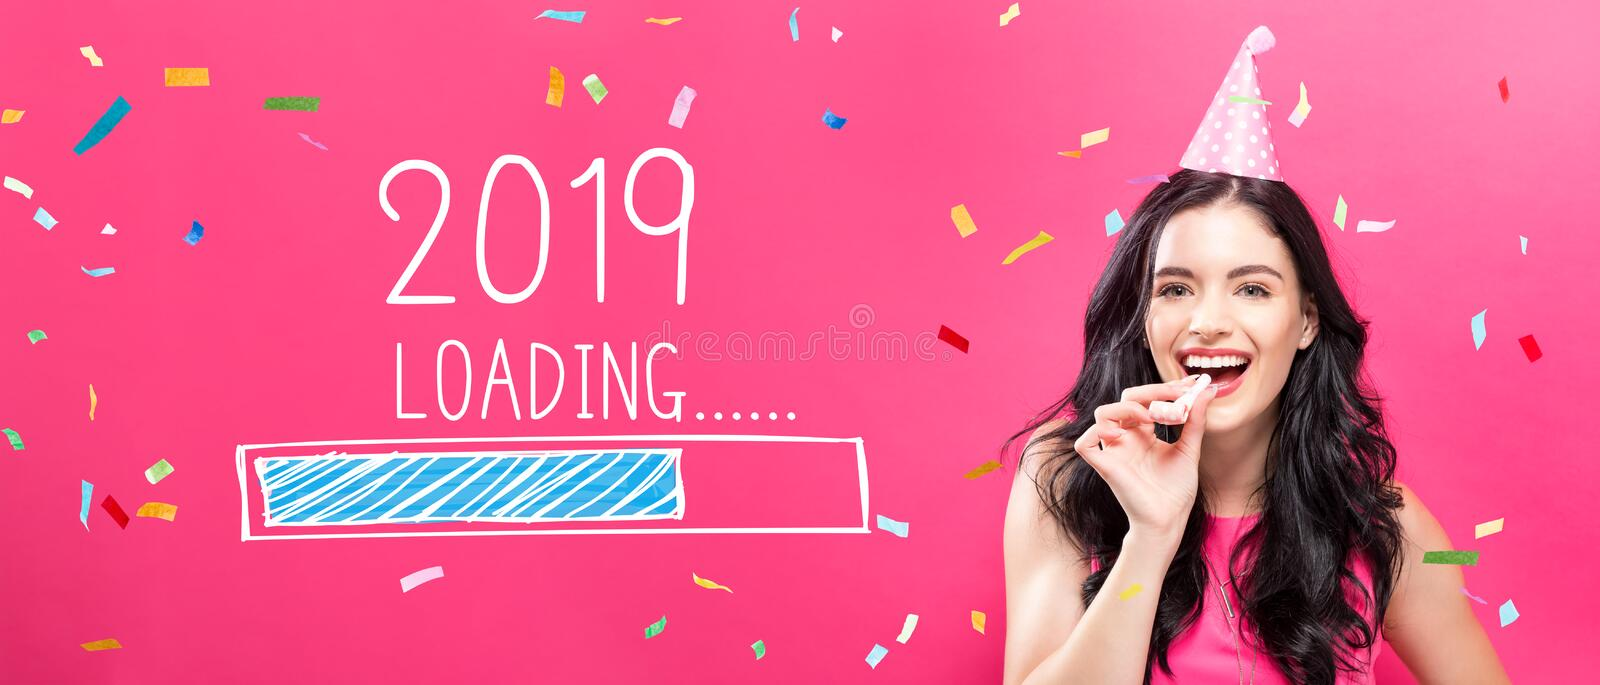 Loading new year 2019 with young woman with party theme stock photos